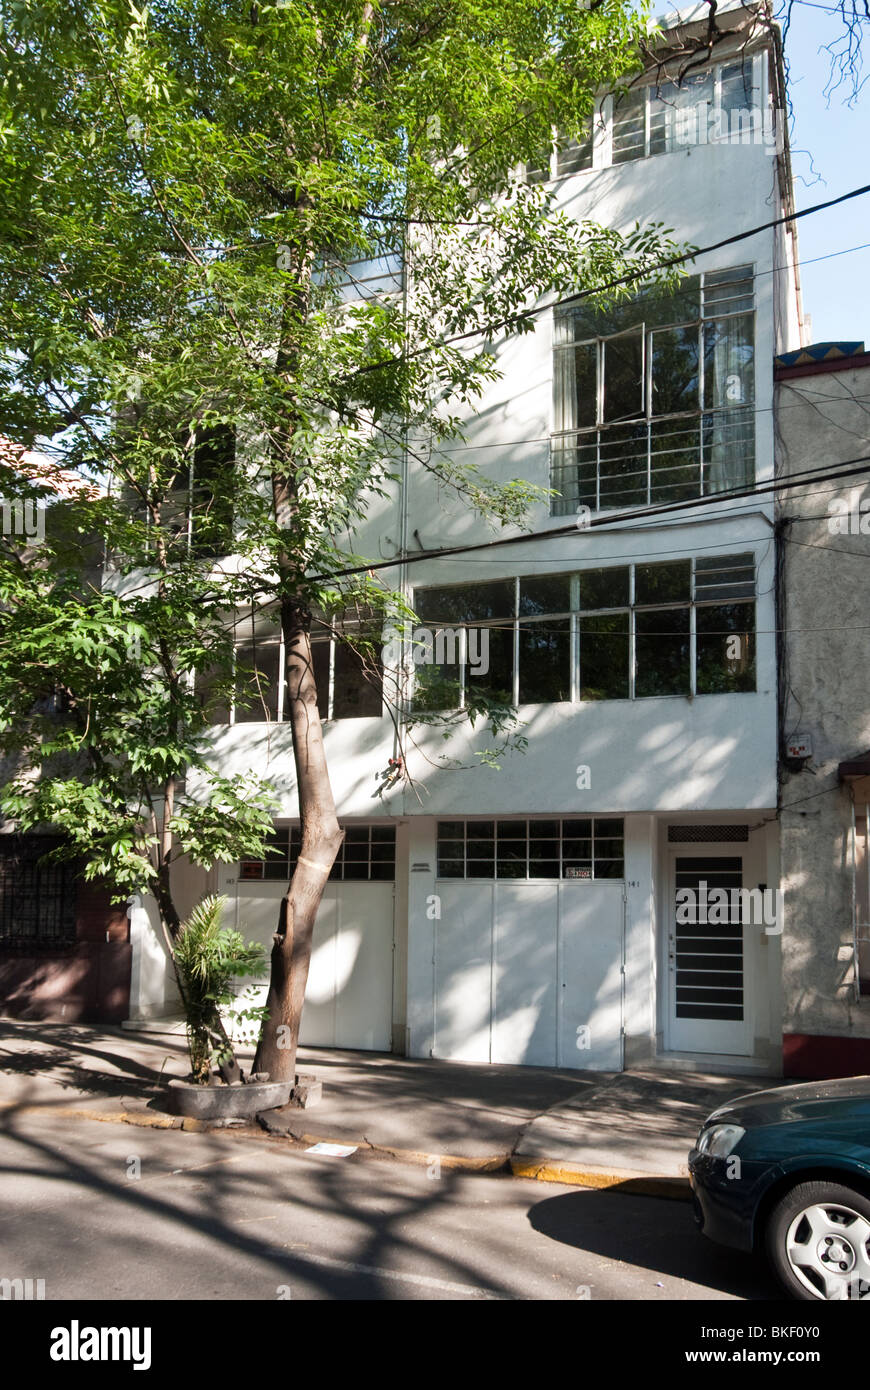 early Modernist duplex residential building by famous Mexican architect Luis Barragan in Condesa district Mexico - Stock Image